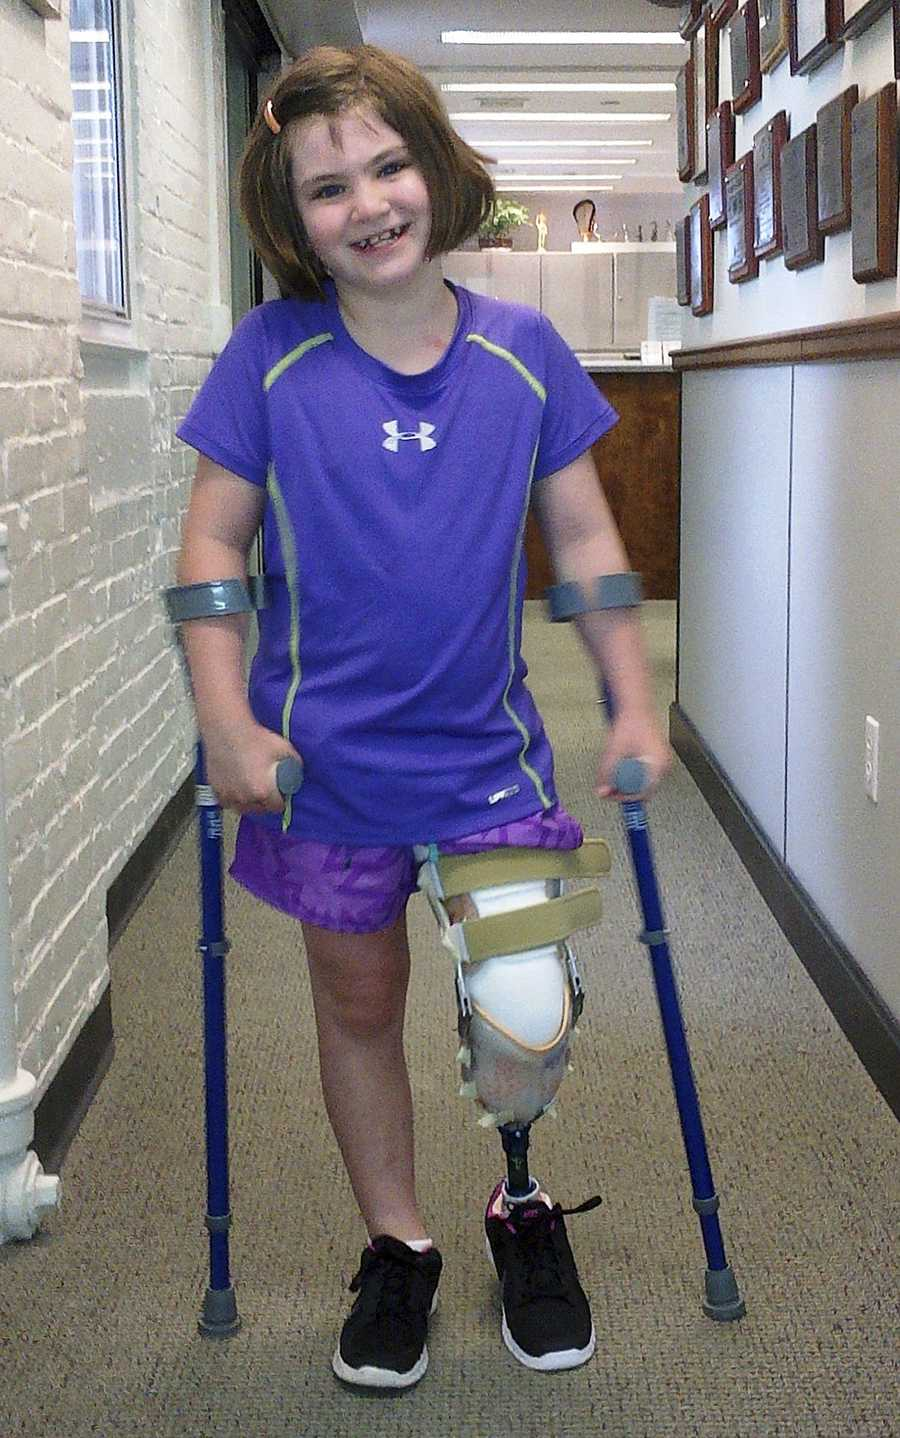 """This photo released Thursday, Aug. 15, 2013, by the Richard family shows Jane Richard, 7, who lost part of her left leg in the Boston Marathon bombings on April 15, 2013, walking on a prosthetic leg in Boston. The family of Jane and her late brother Martin, 8, who was killed by one of the blasts, said in a statement that the little girl is already dancing on her prosthetic leg and """"struts around on it with great pride."""""""